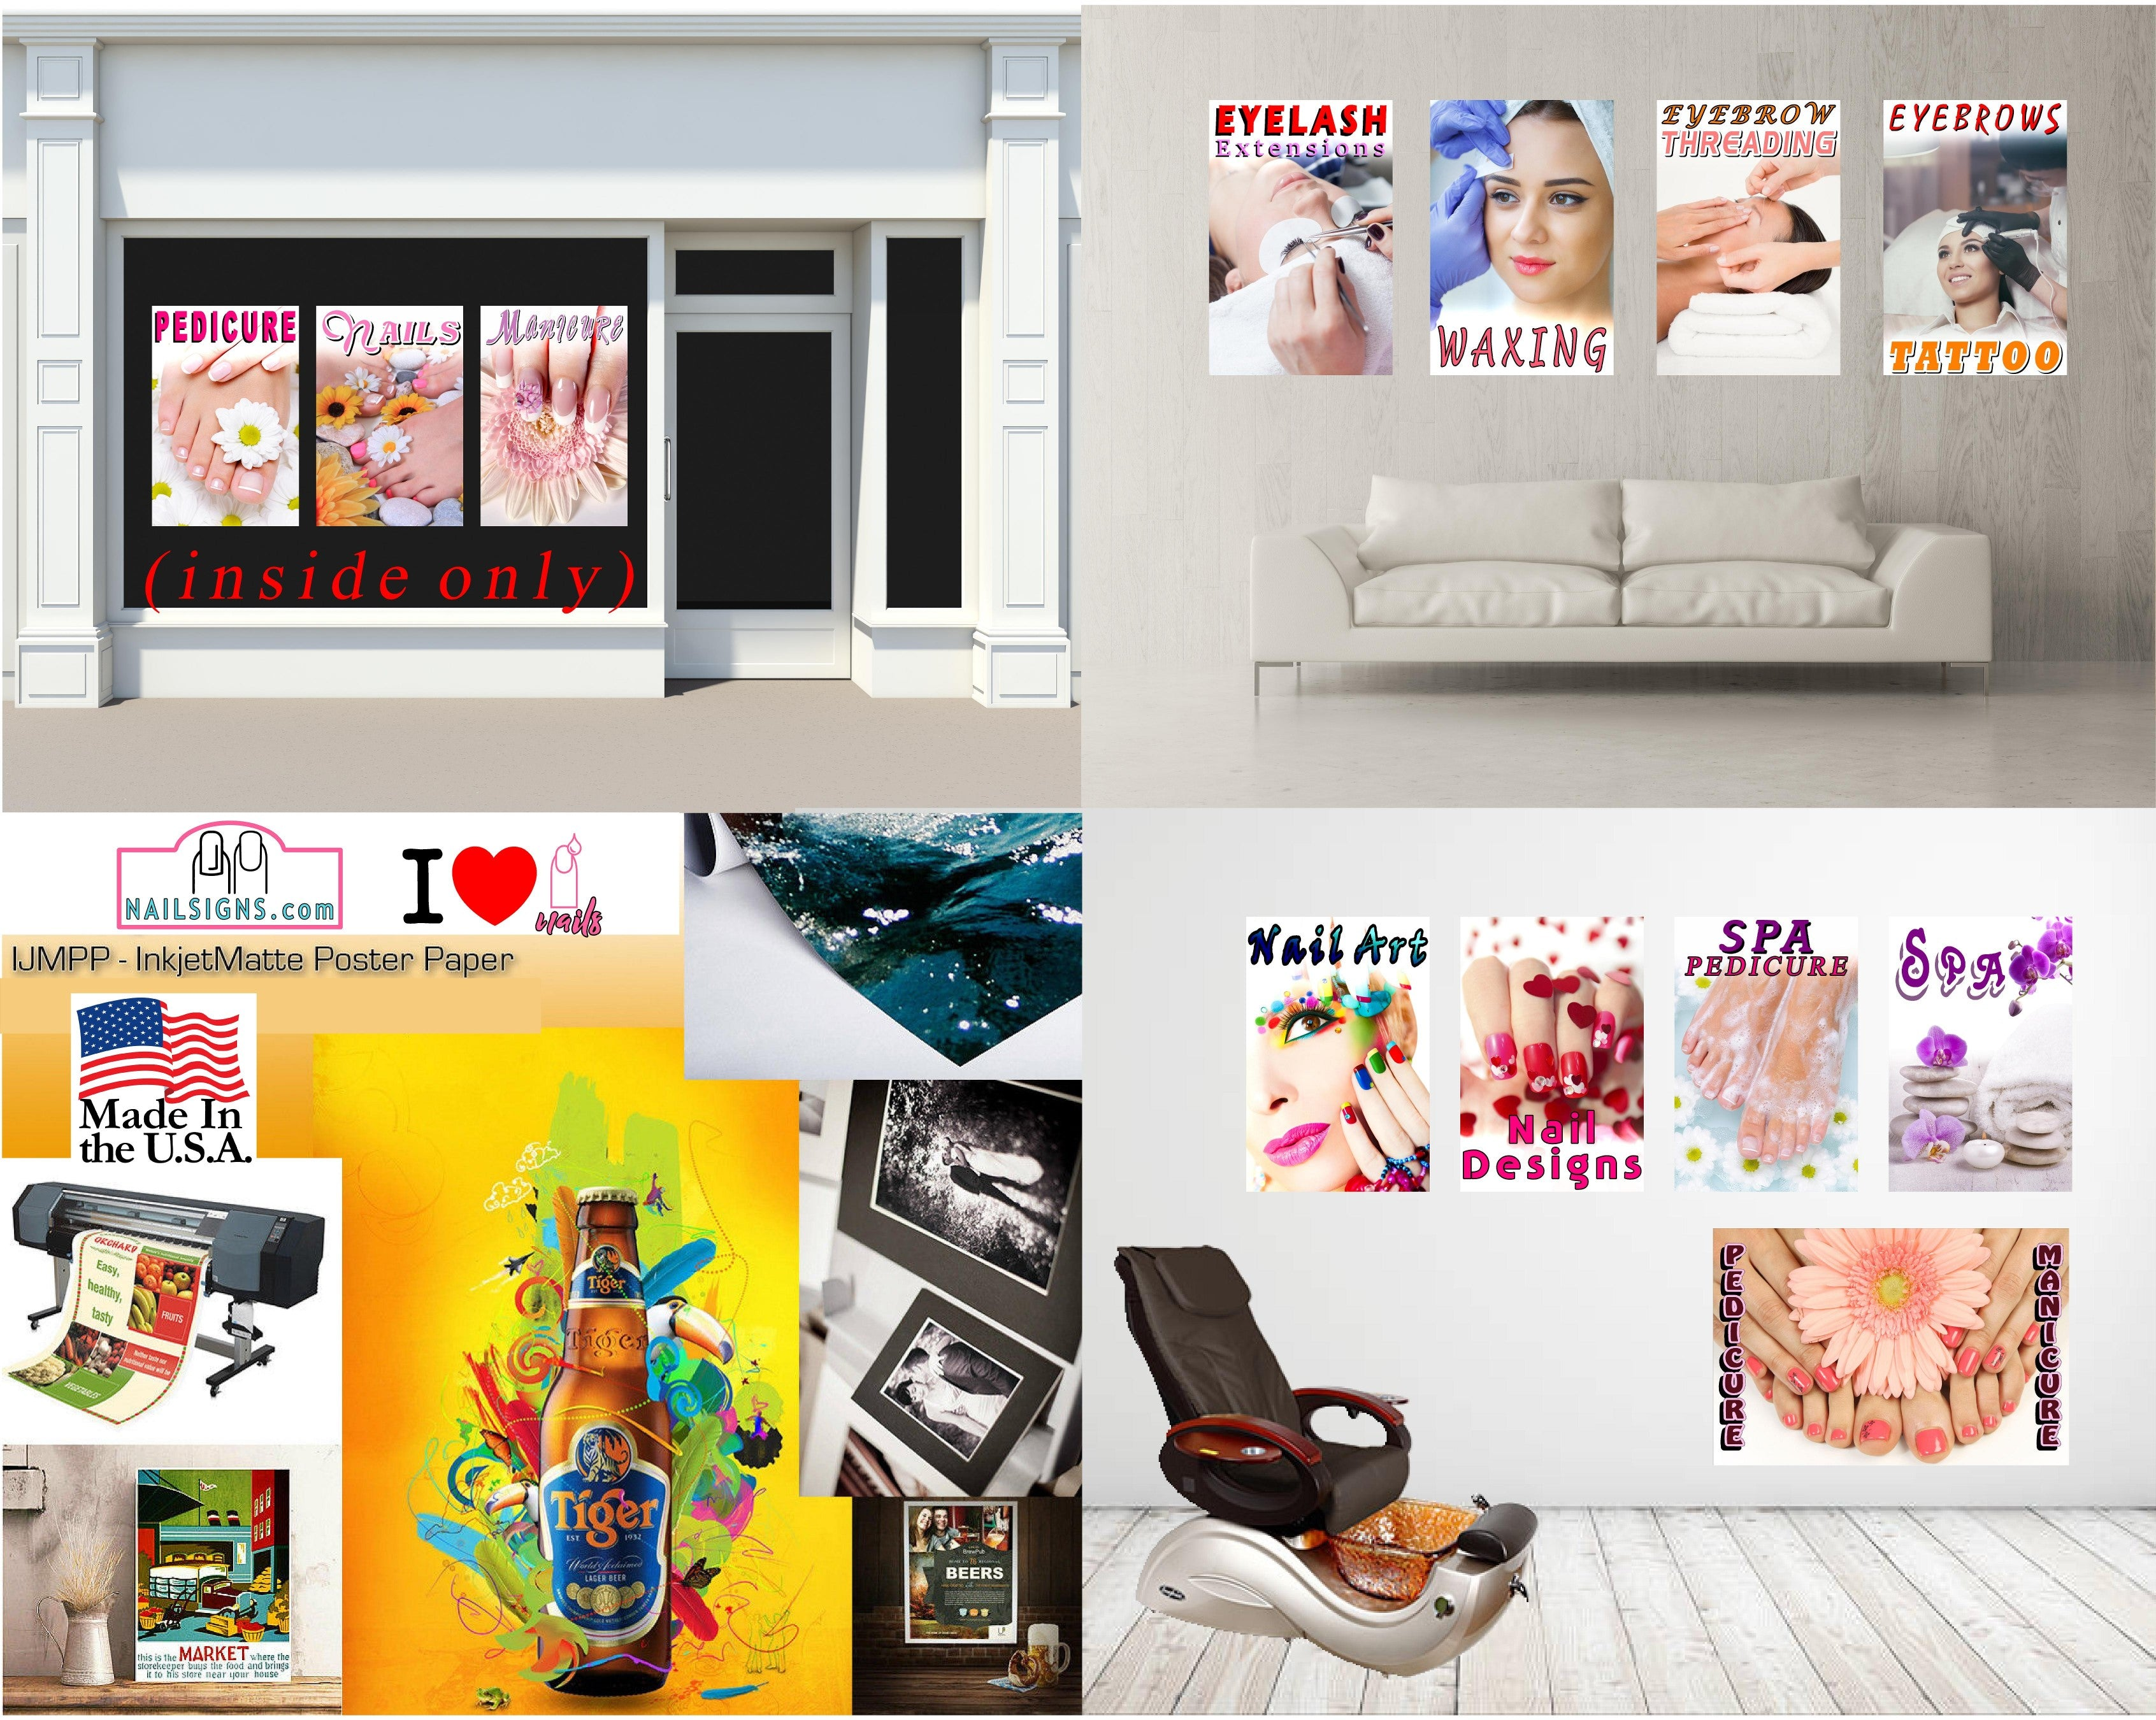 Manicure 21 Photo-Realistic Paper Poster Premium Matte Interior Inside Sign Advertising Marketing Wall Window Non-Laminated Vertical